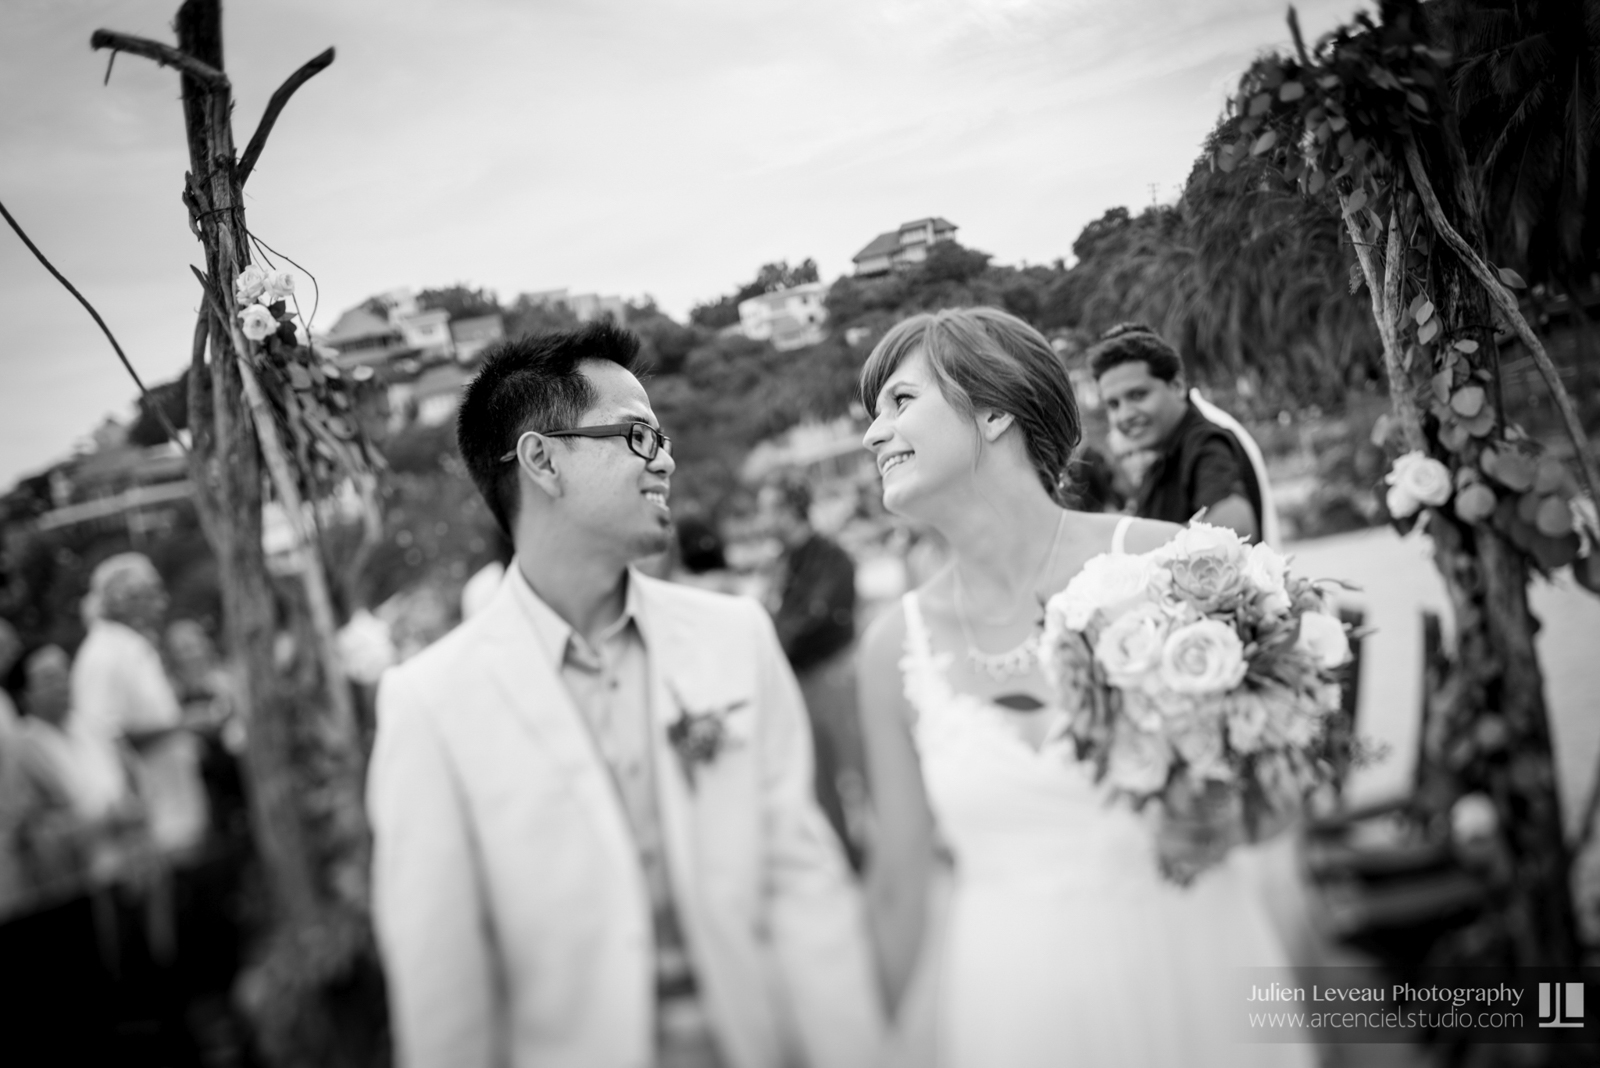 Wedding Photographer - Photo-journalism Sayulita